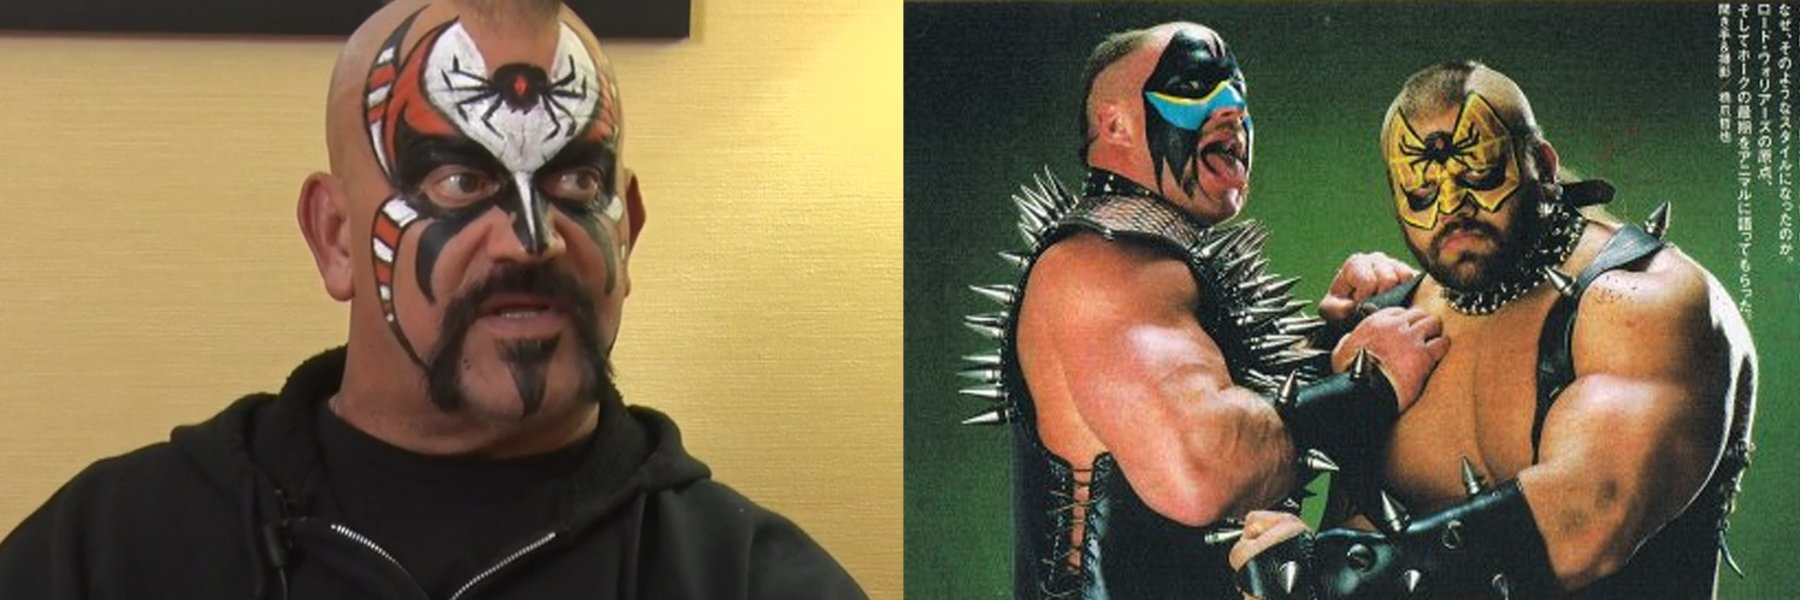 Brand NEW Road Warrior Animal 2-Hour Shoot Interview - June 2018!